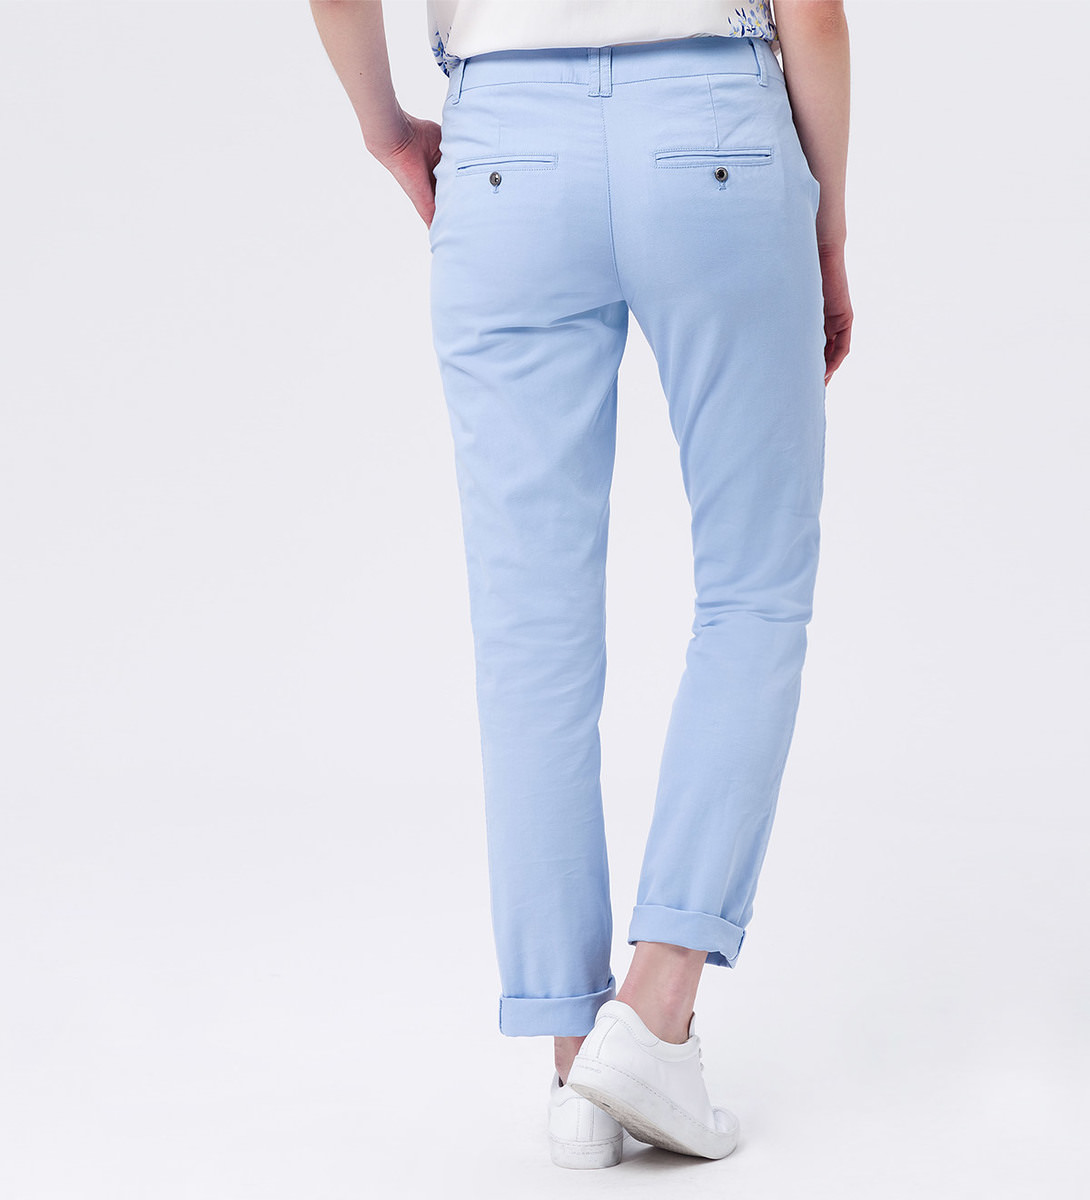 Hose Chino in unifarbenem Design 32 Inch in blue